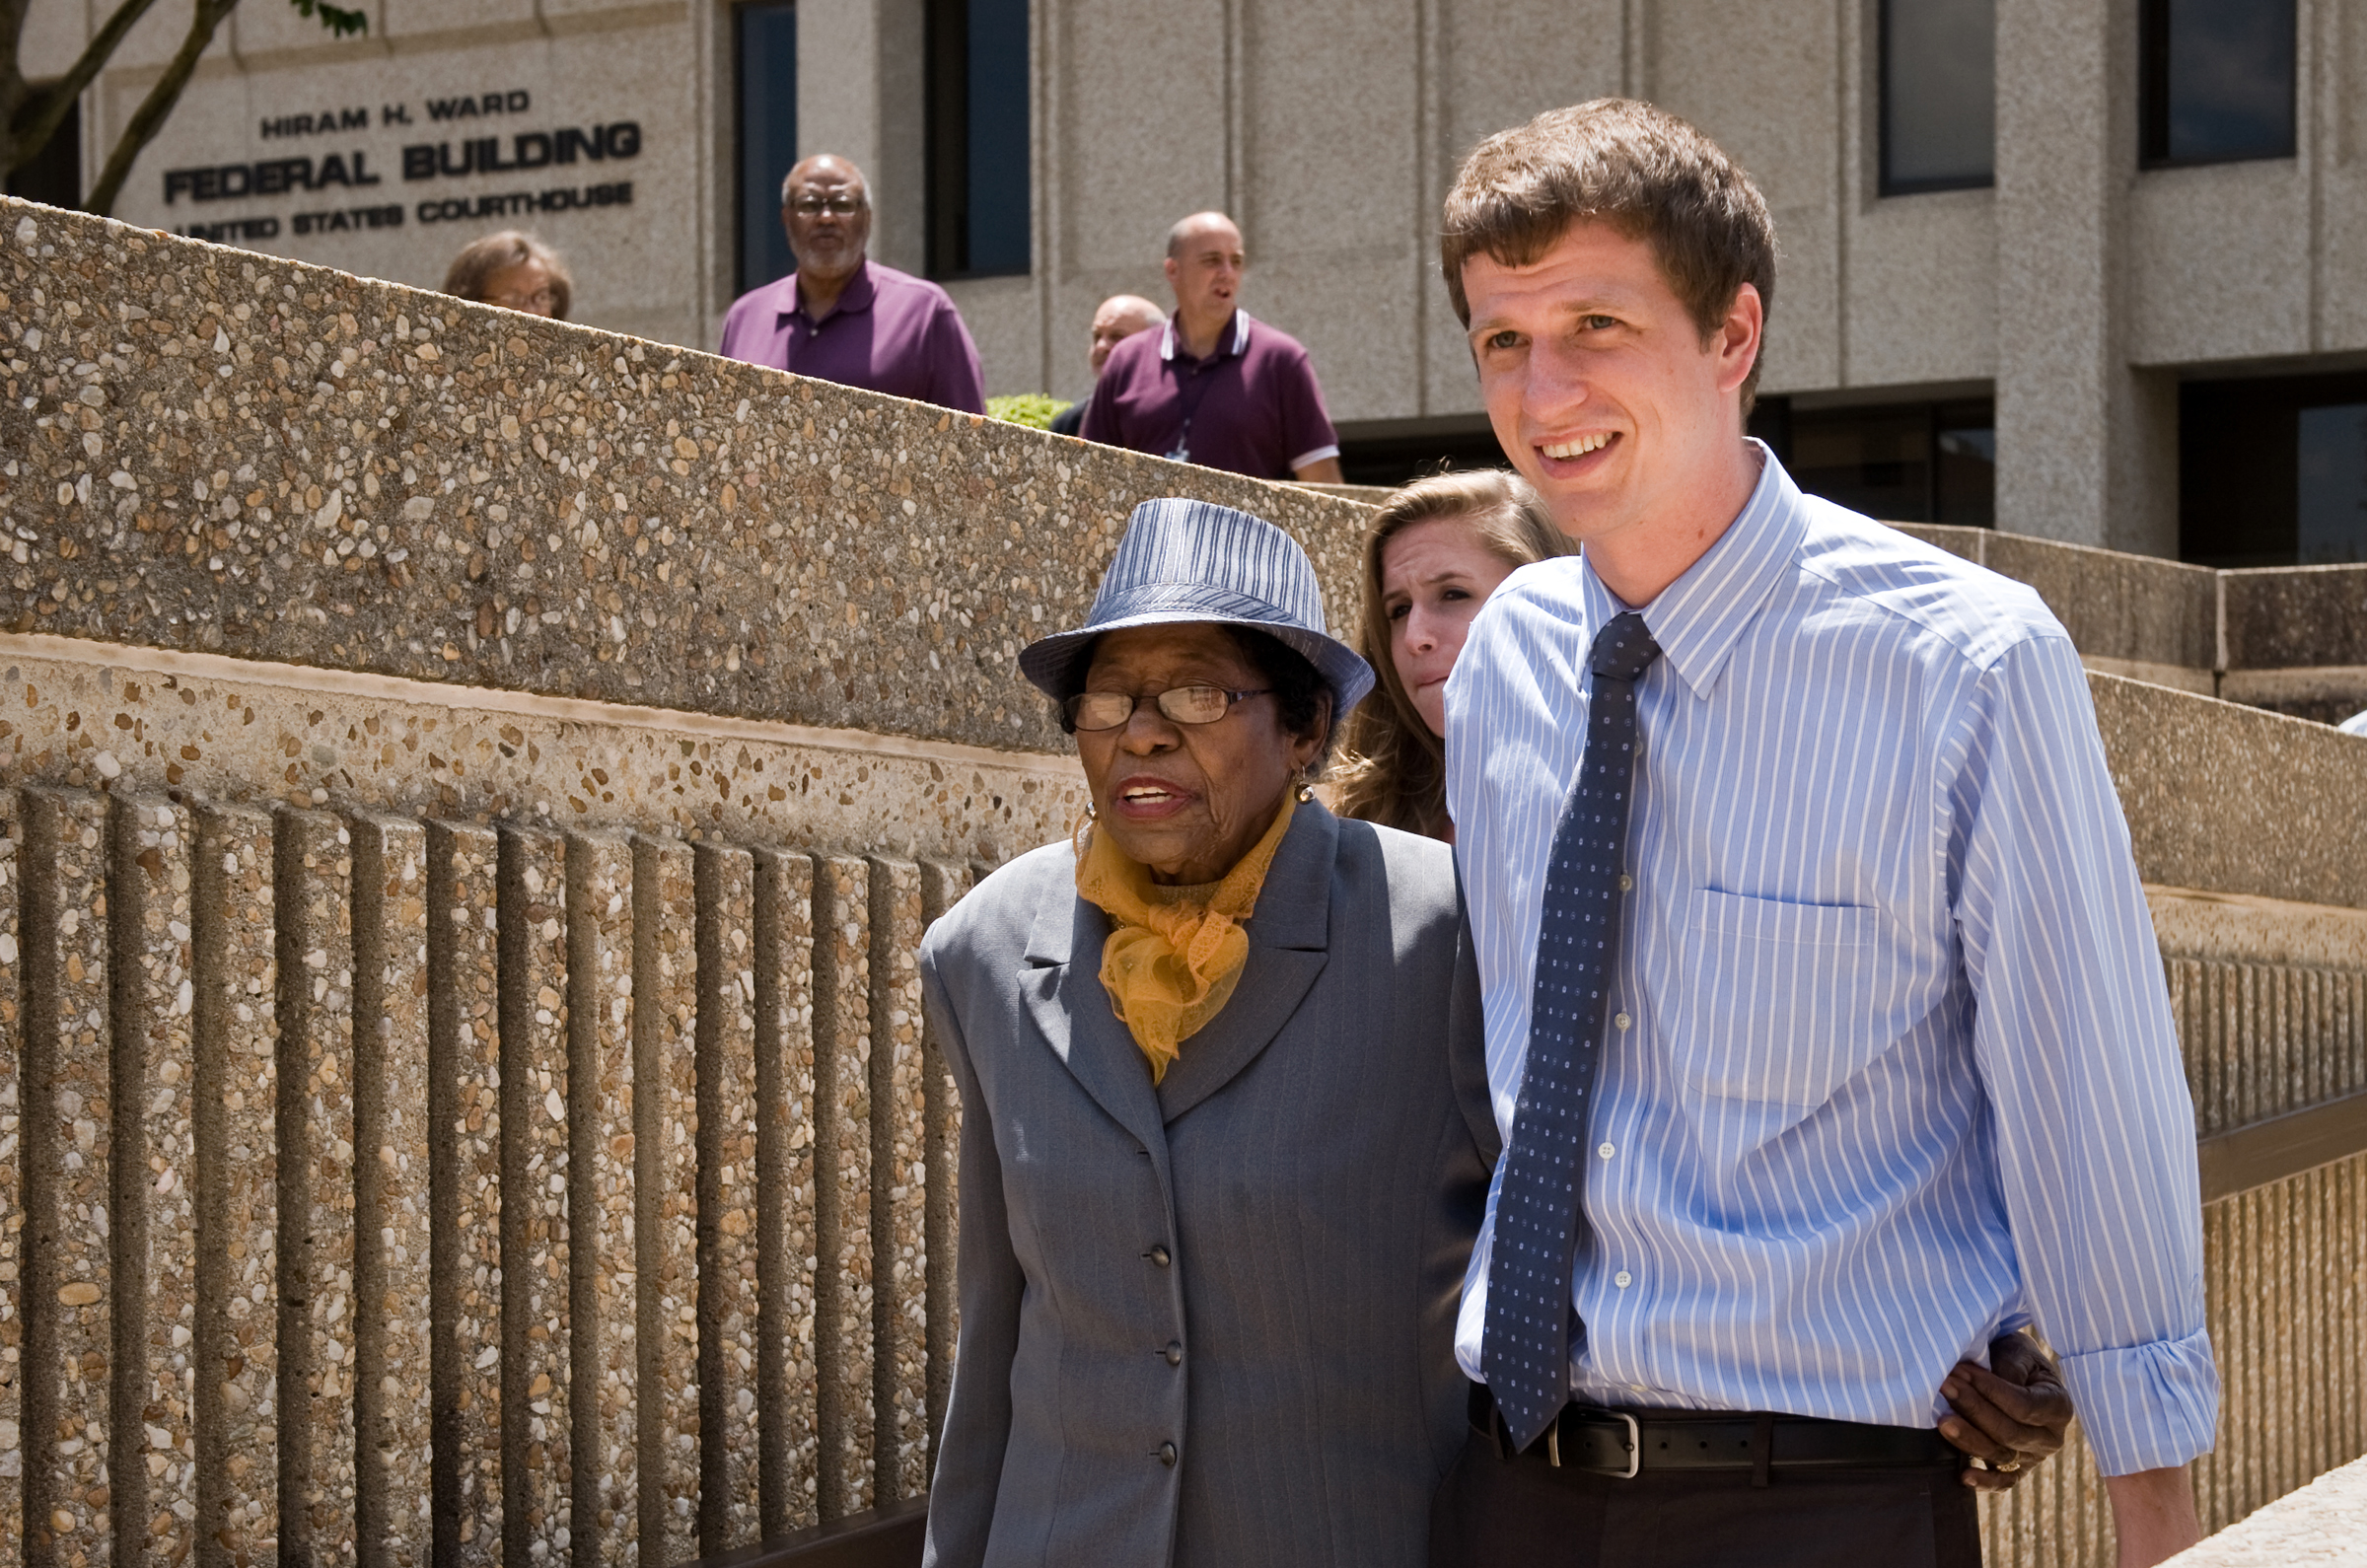 Rob Stephens, a field secretary with the North Carolina NAACP, escorts Rosanell Eaton, a plaintiff in the lawsuit challenging the new North Carolina voting law, out of the Ward Federal building during lunch recess on Monday, July 7, 2014 in Winston-Salem, N.C.  The U.S. Justice Department is asking a federal judge in North Carolina to put sweeping changes to the state's voting laws on hold through the November election. The Justice Department argues the Republican-backed measures are designed to suppress turnout at the polls among minorities, the elderly and college students.